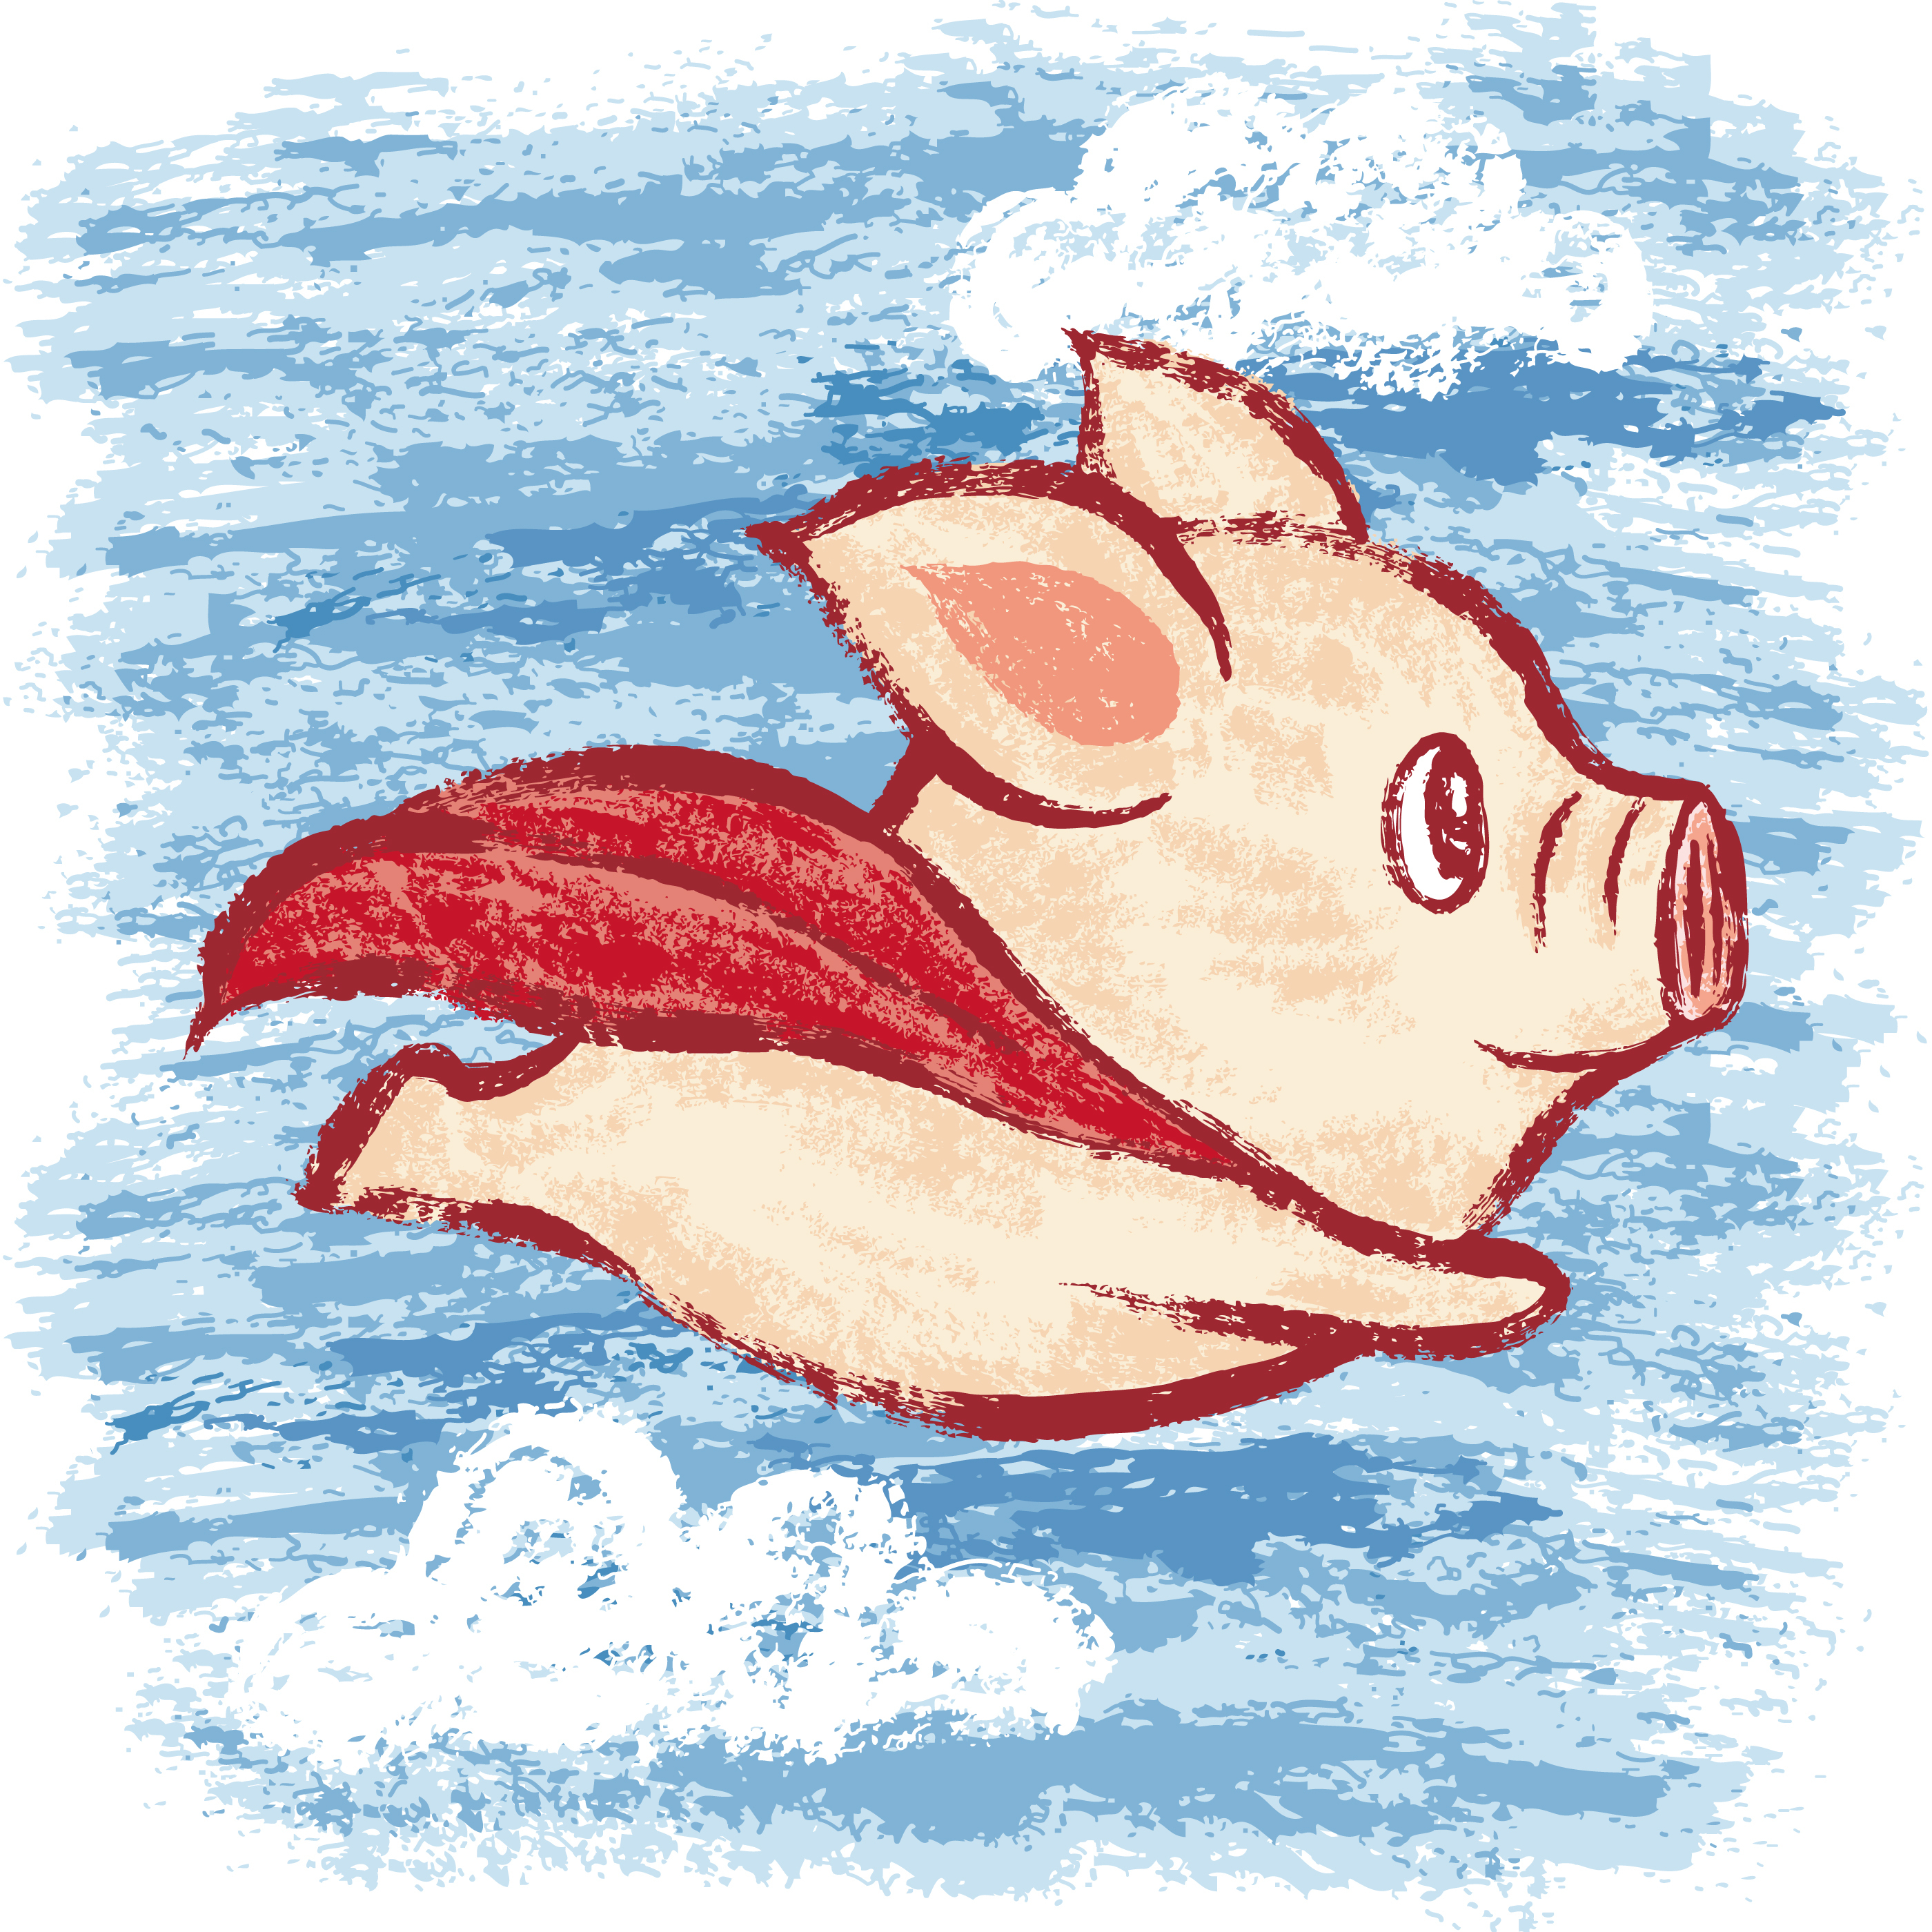 Imagine A Flying Pig: How Words Take Shape In The Brain